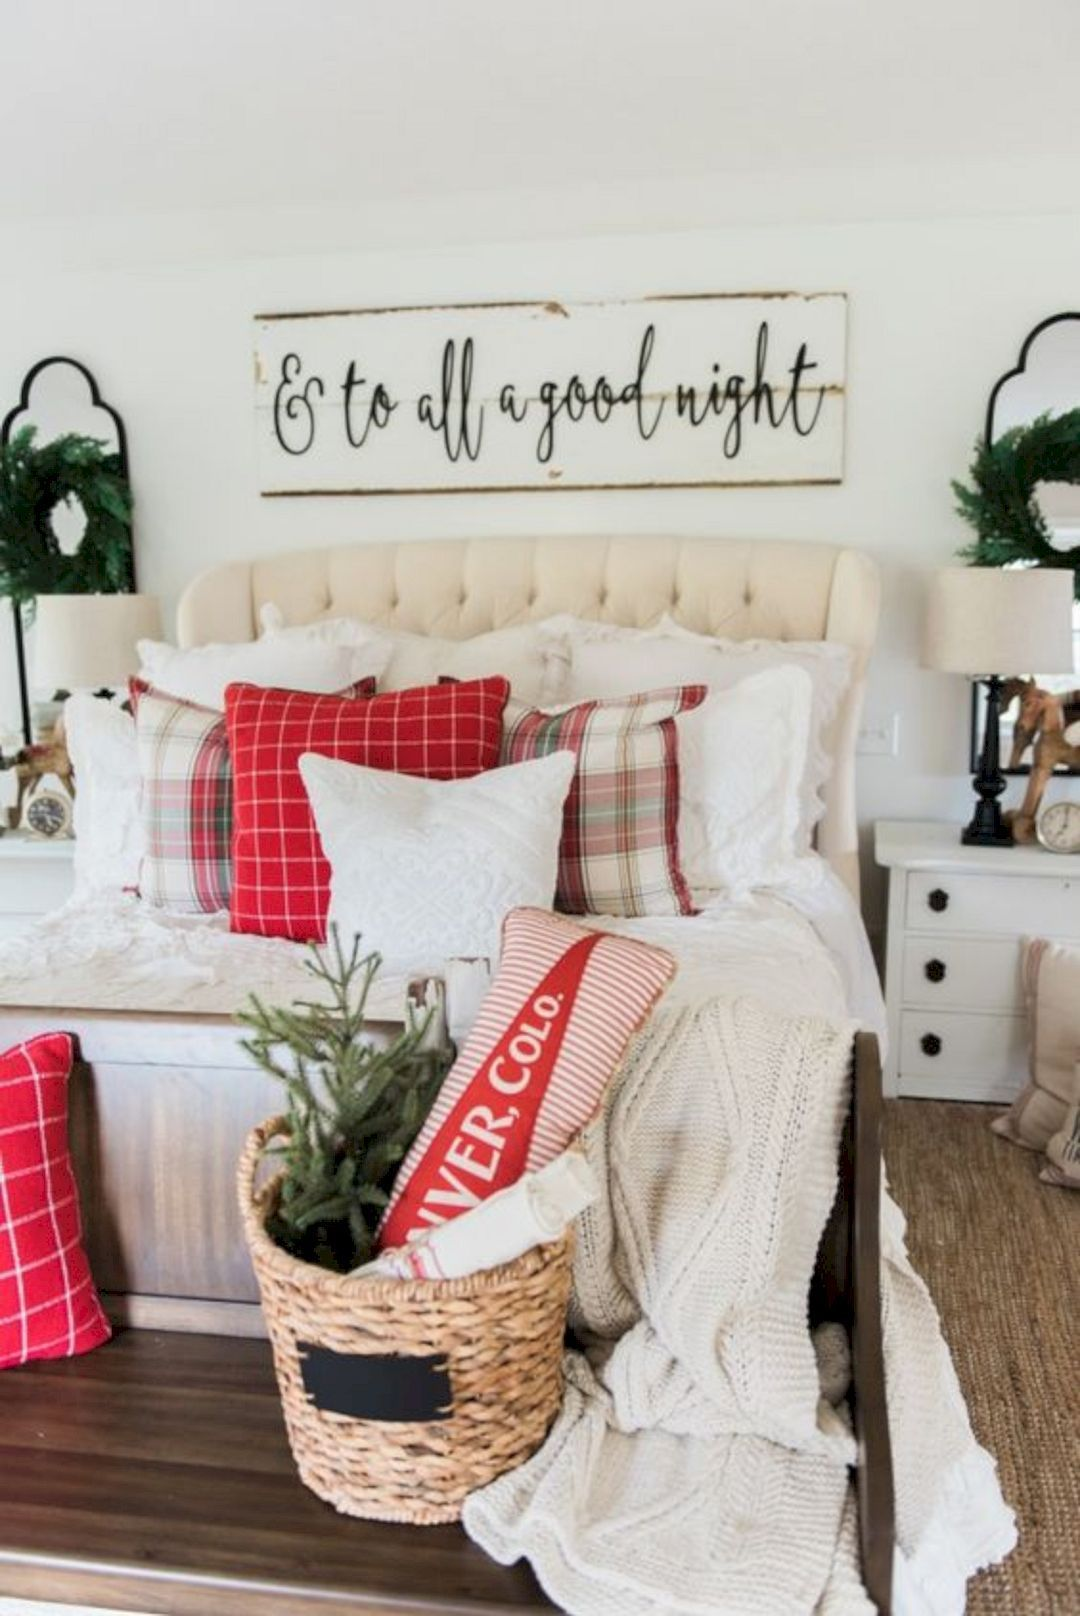 16 Decorating Ideas to Jazz Up Holiday Seasons | Holidays ...